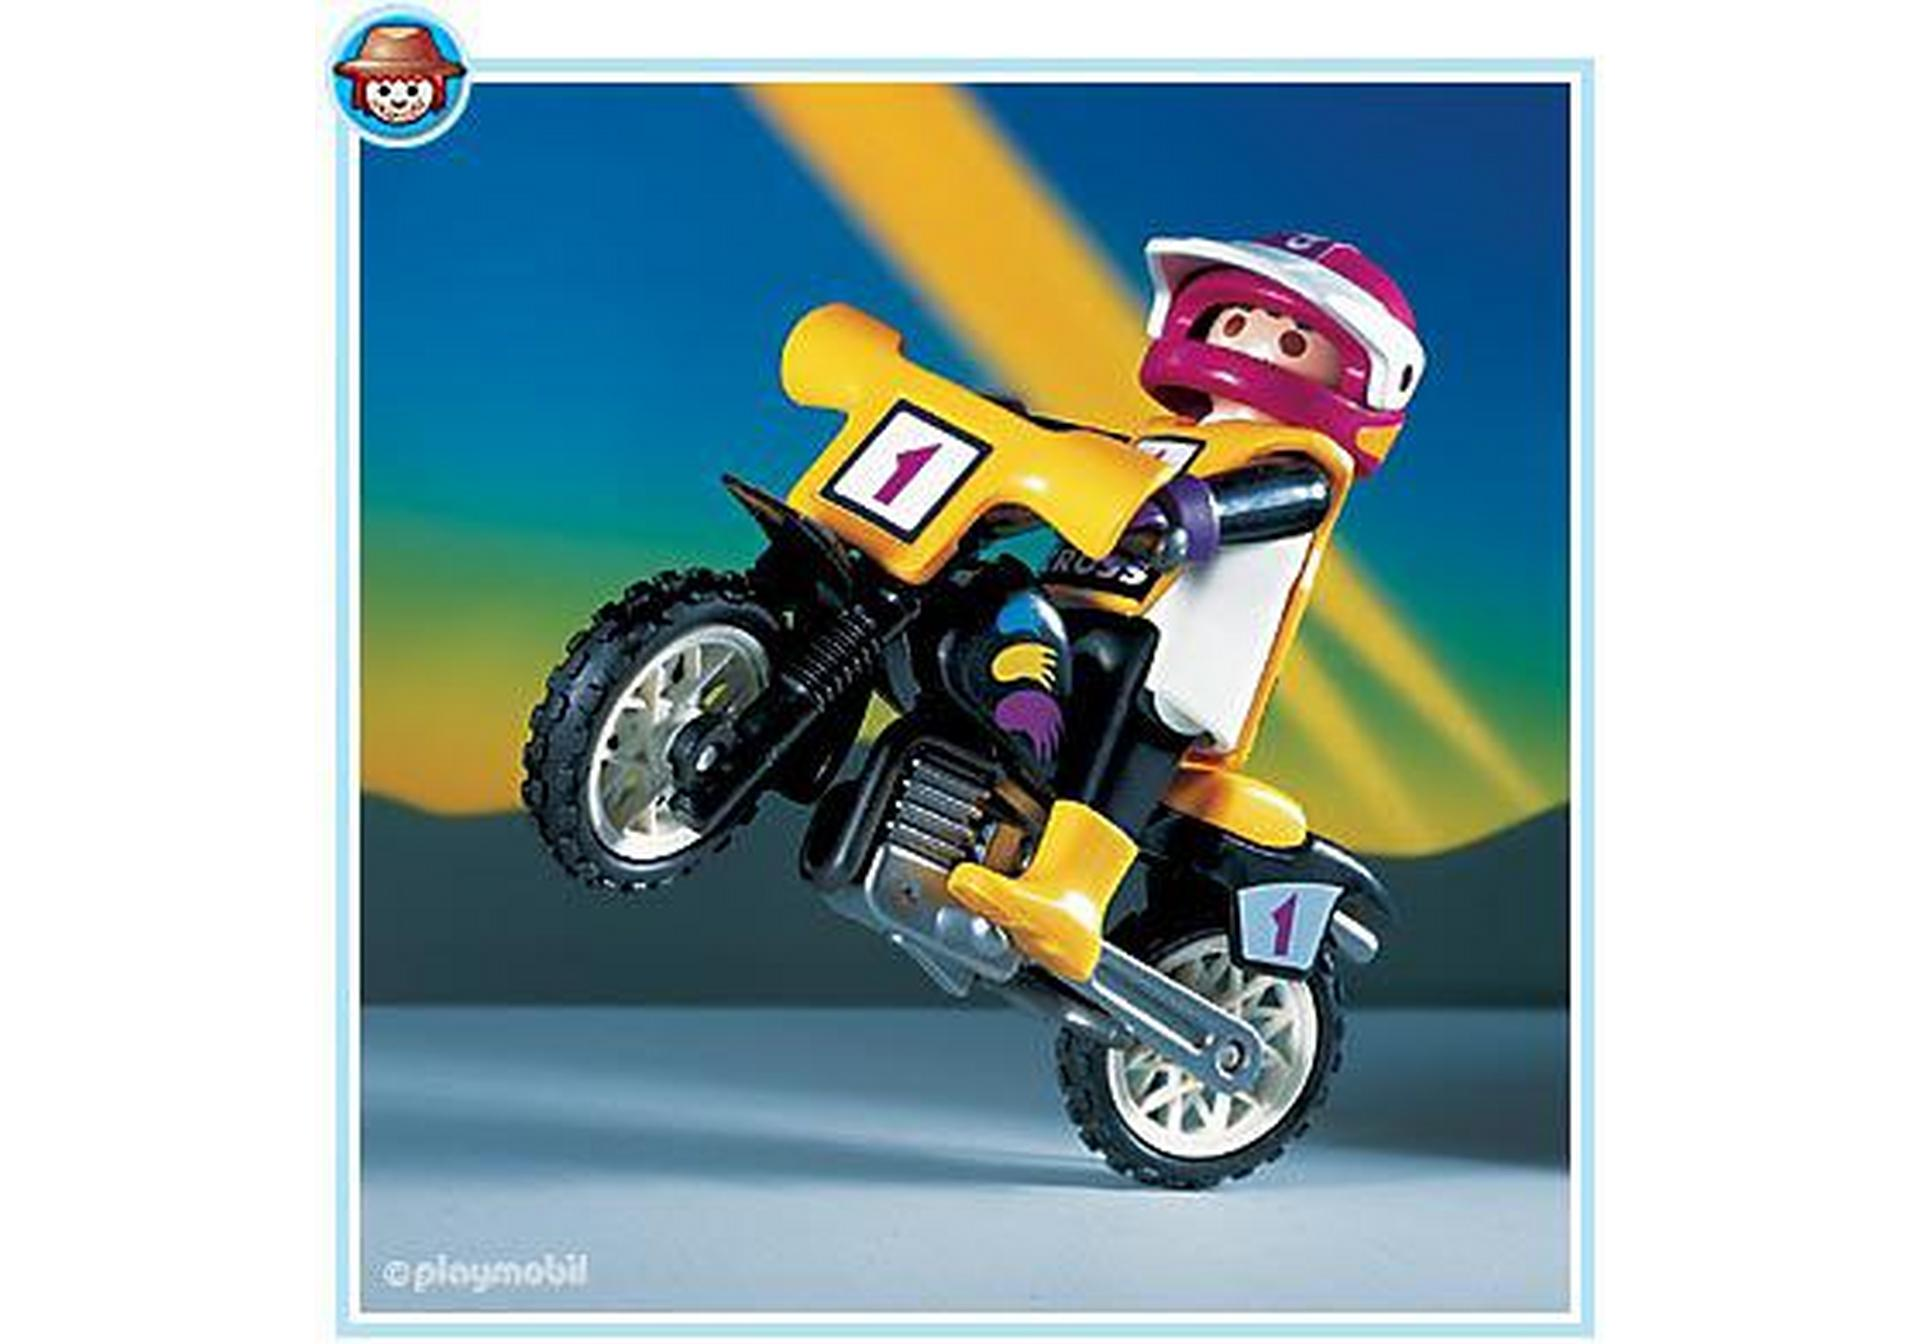 Pilote moto trial 3044 a playmobil france - Moto playmobile ...